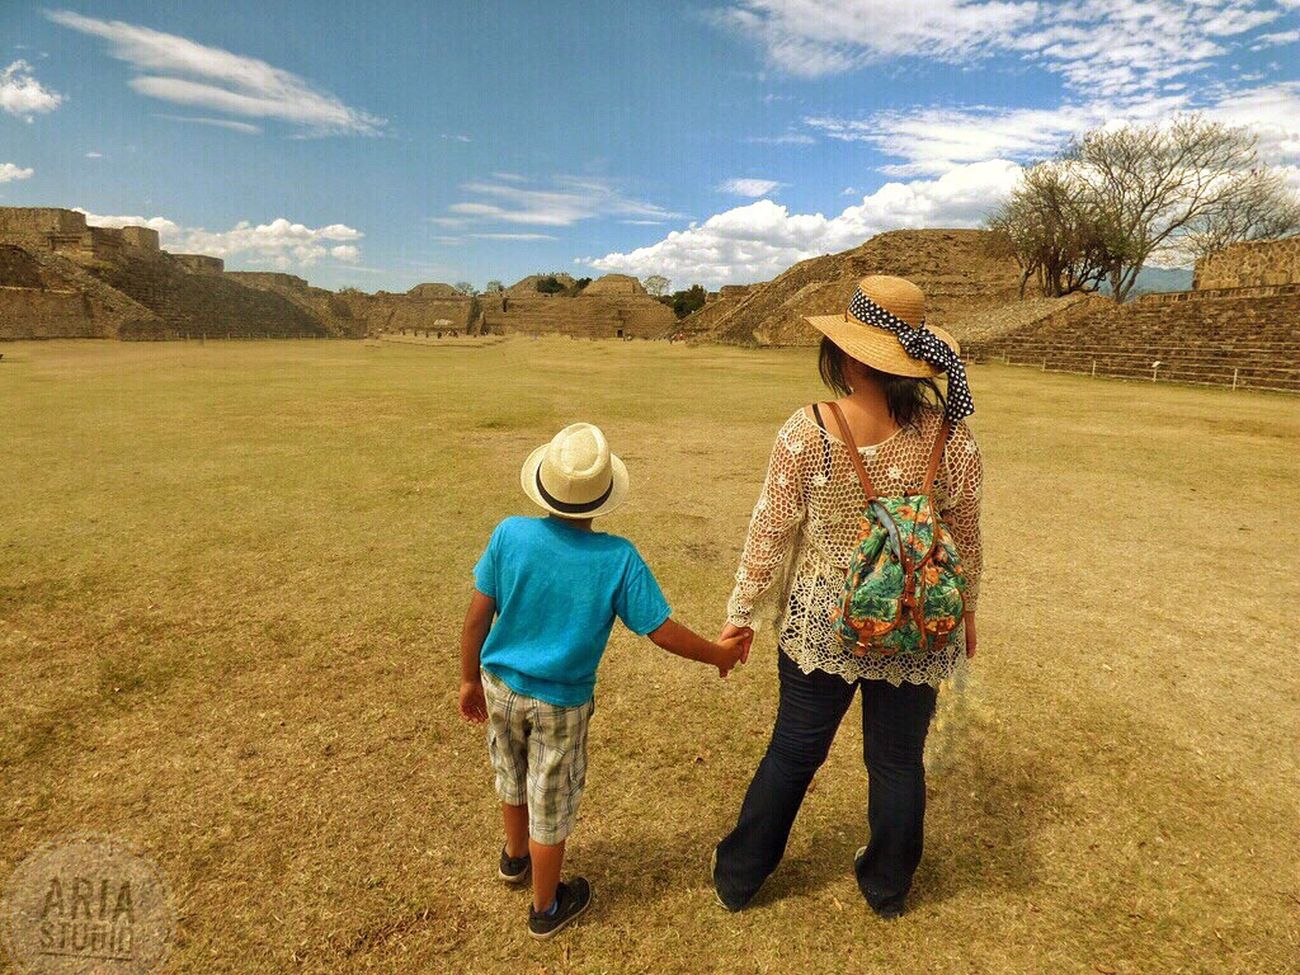 Two People Full Length Outdoors Rural Scene Togetherness People Agriculture Real People Cowboy Hat Grass Adult Clods Monte Alban Mexico sSky